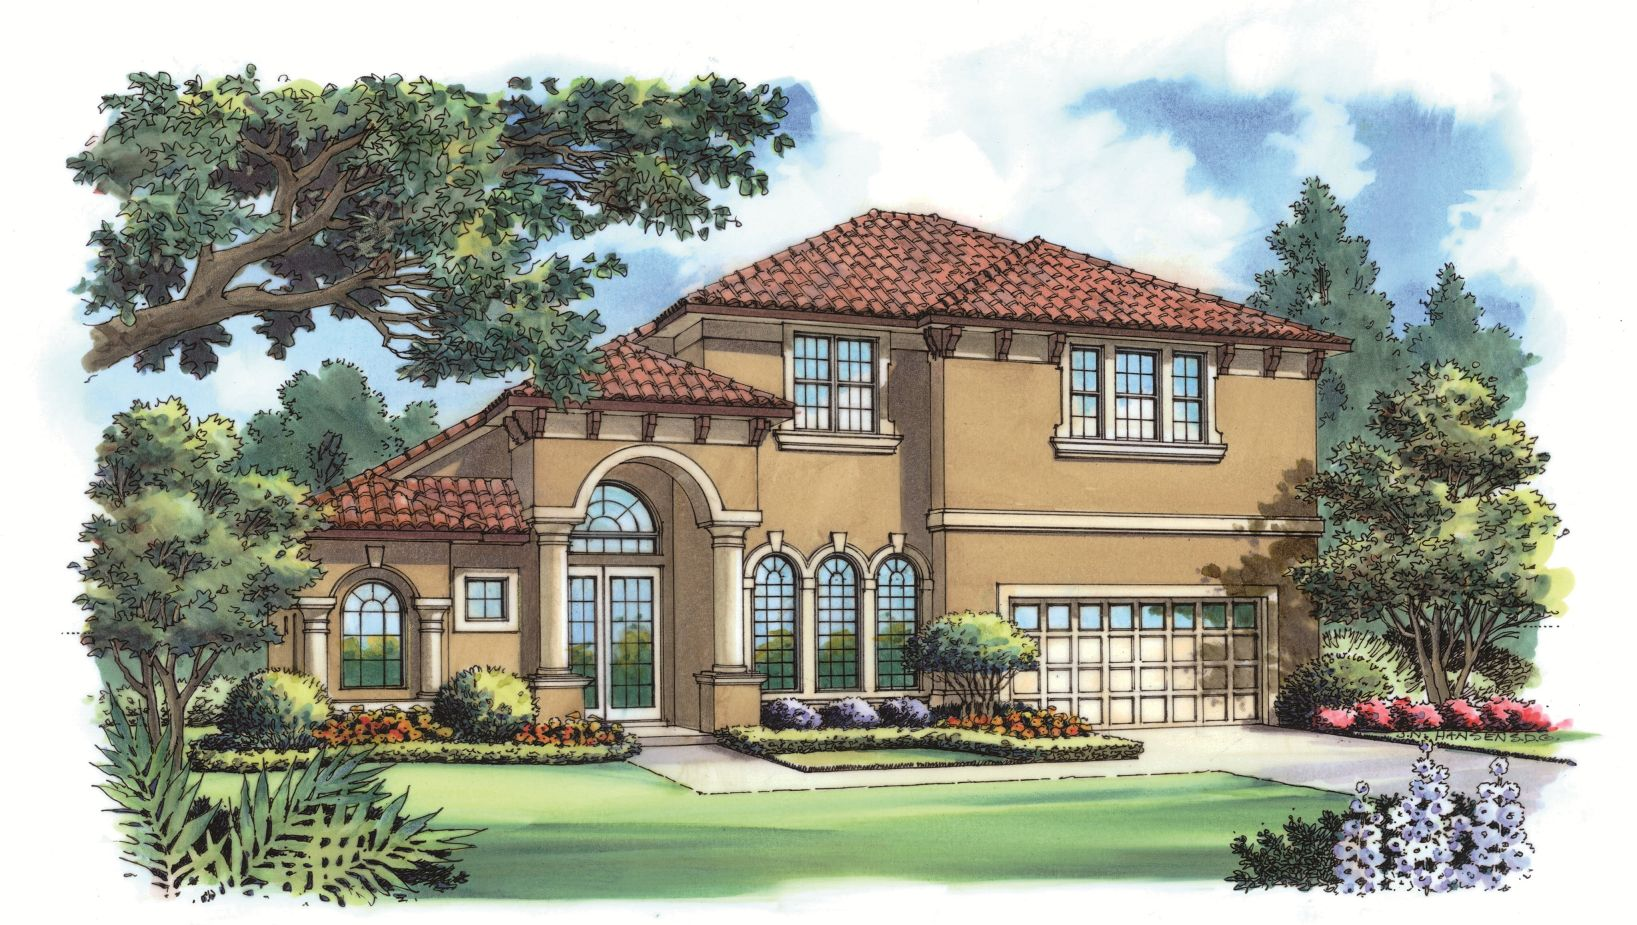 palm coast florida homes for sale luxury real estate